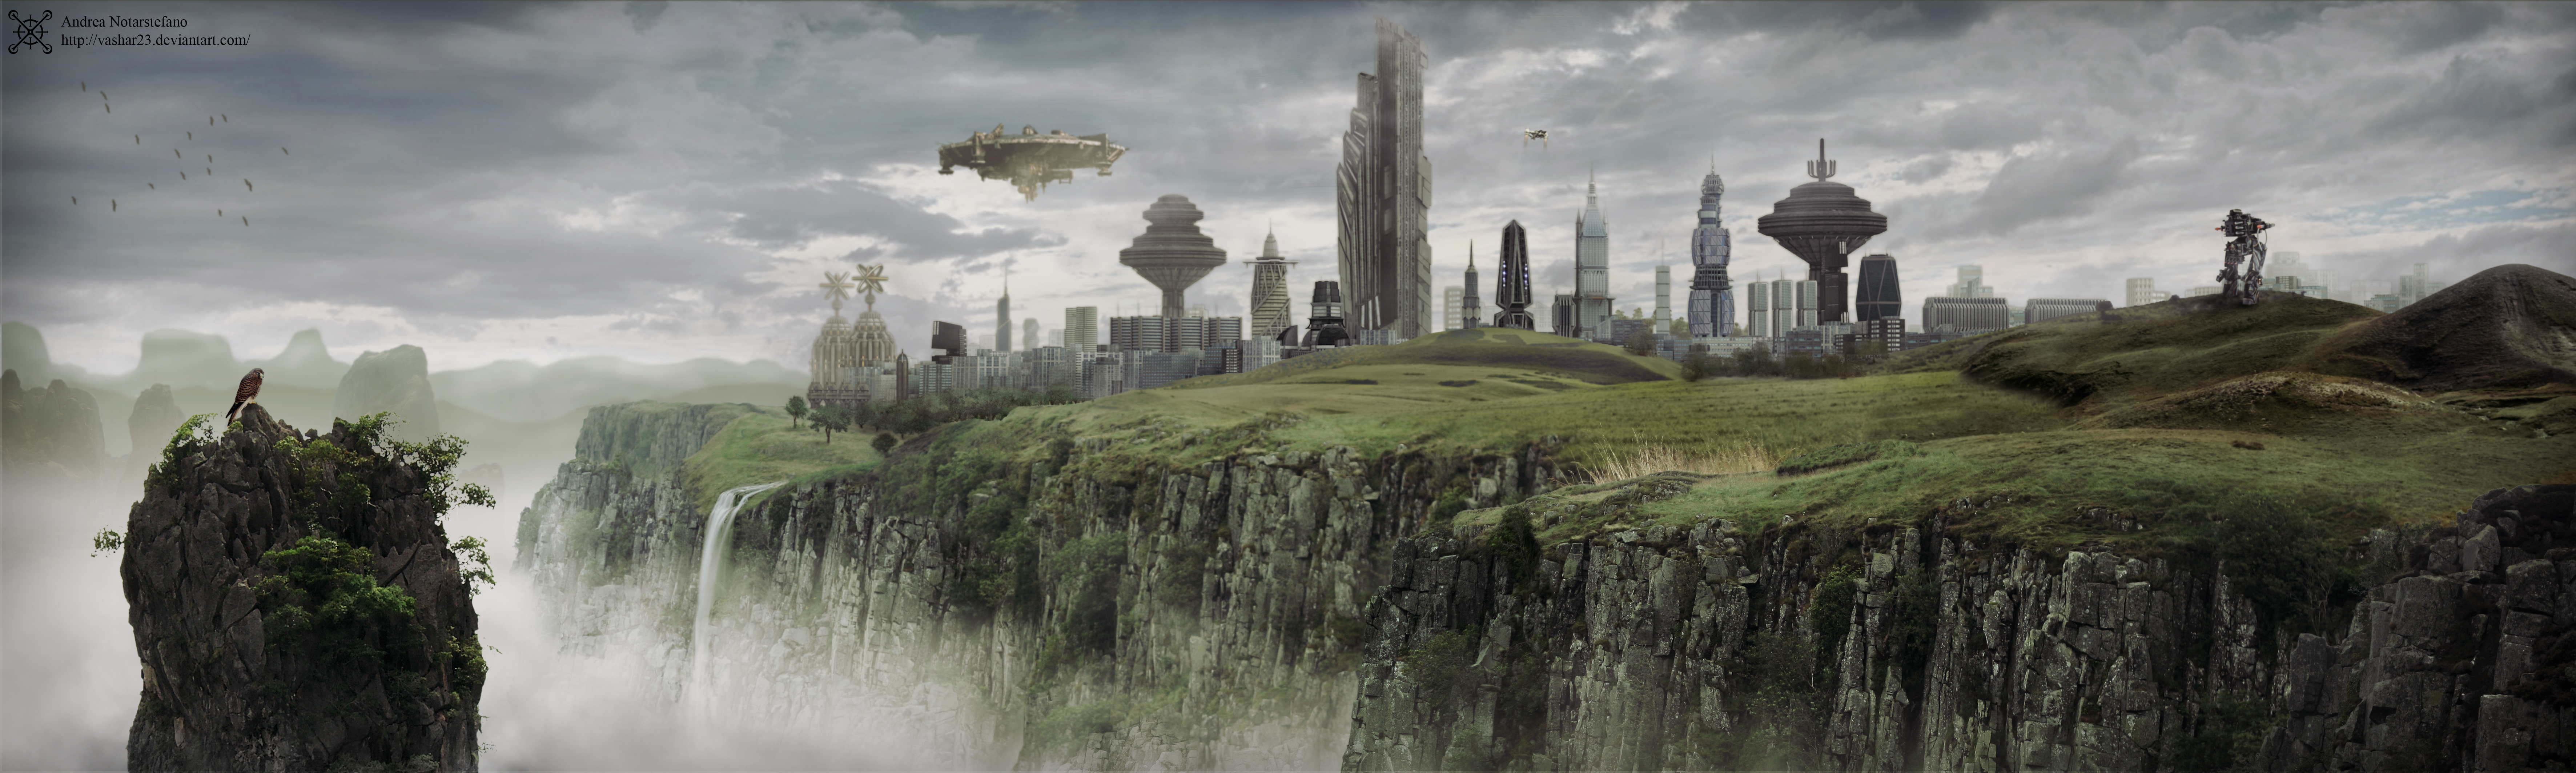 Plateau - Civilization by Vashar23